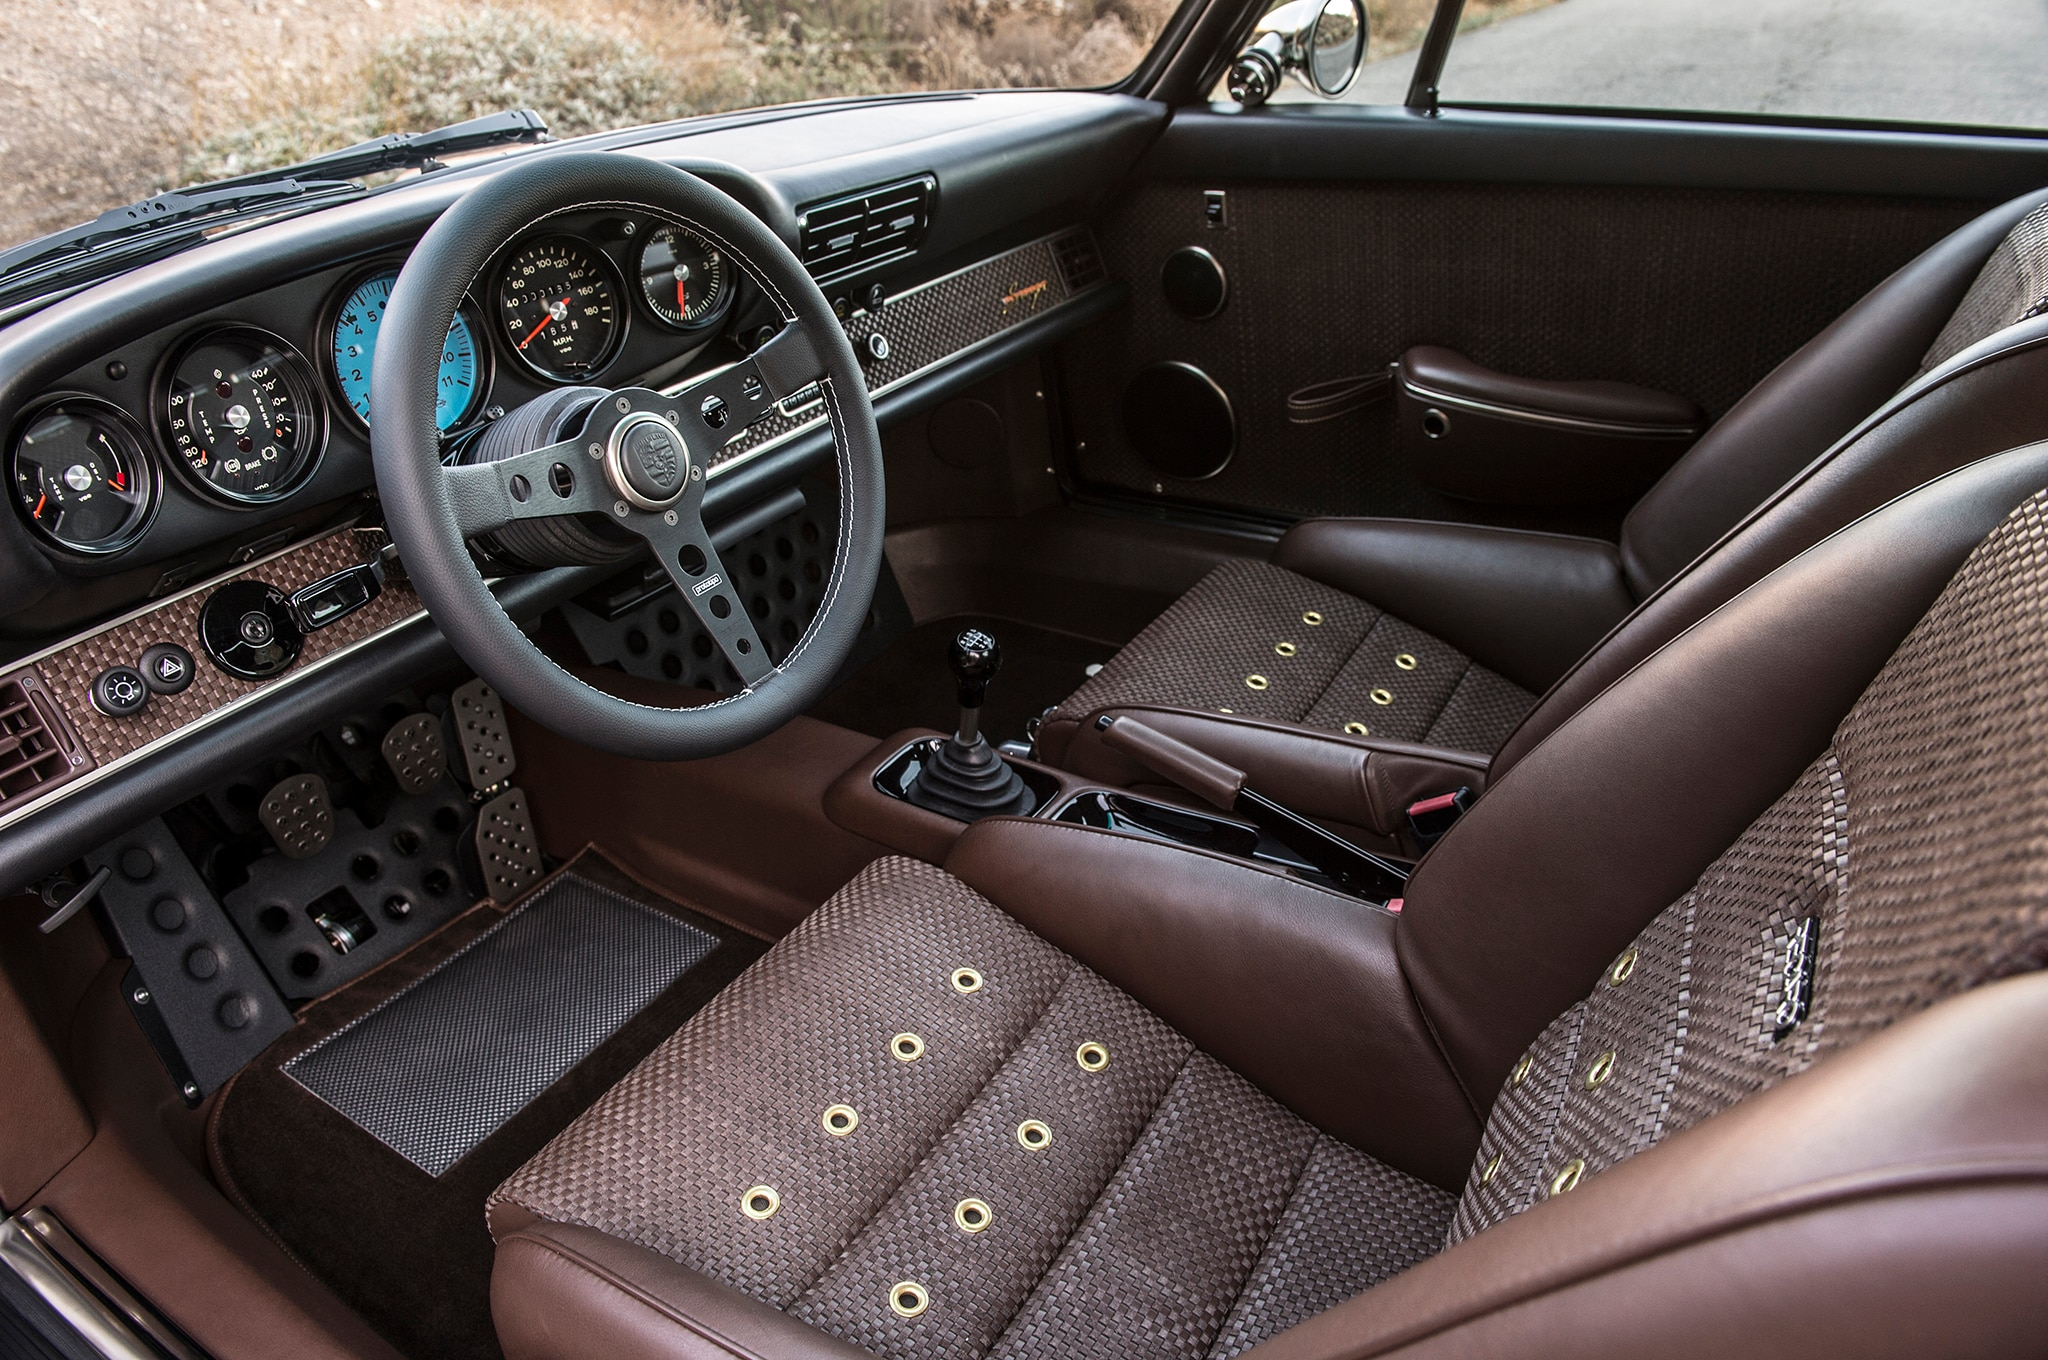 What Is Your Favorite Car Interior Cars